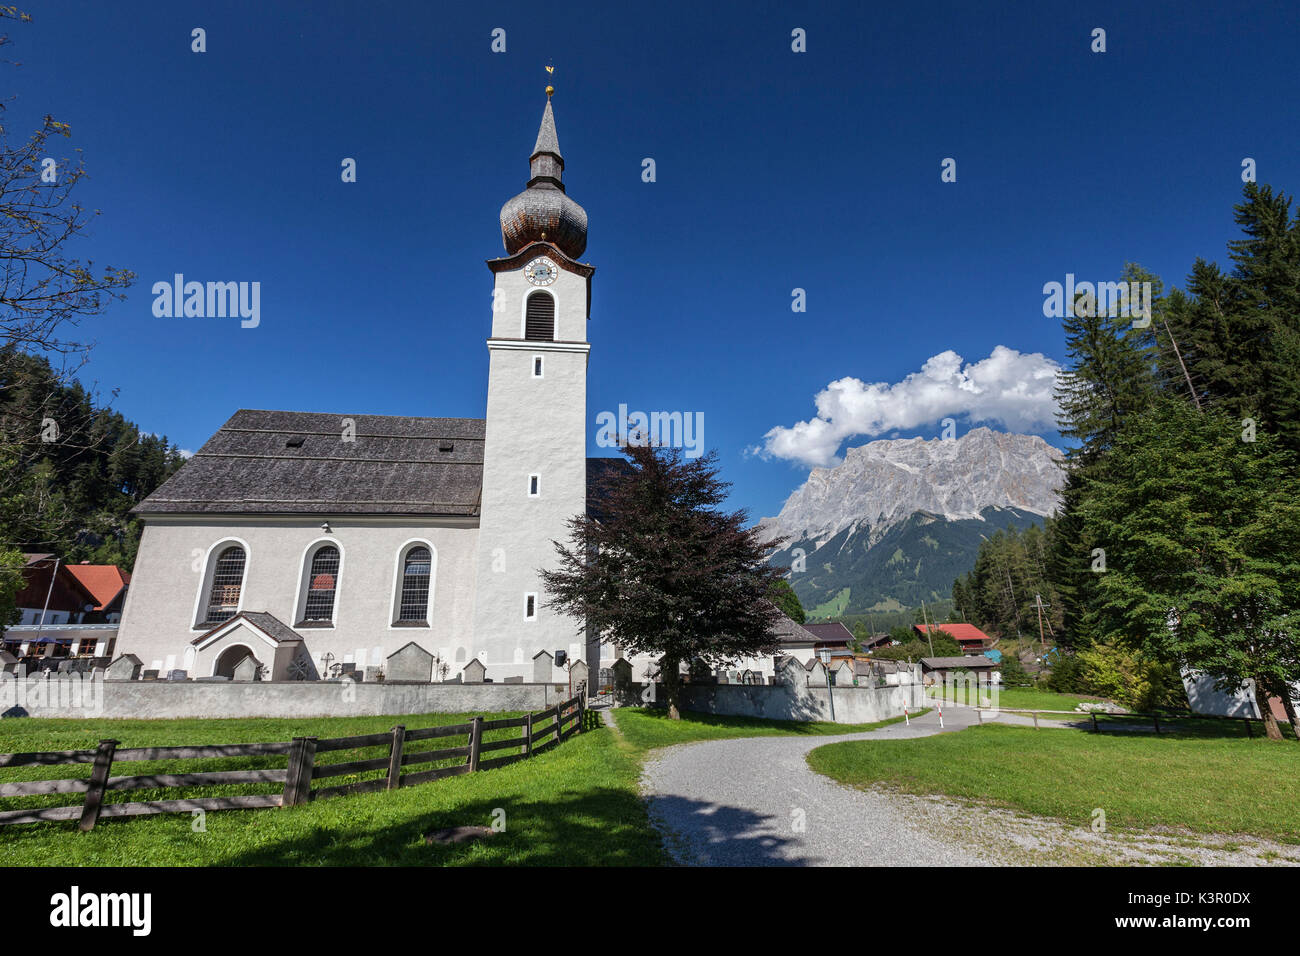 Typical church of alpine village surrounded by peaks and woods Garmisch Partenkirchen Oberbayern region Bavaria Germany Europe - Stock Image